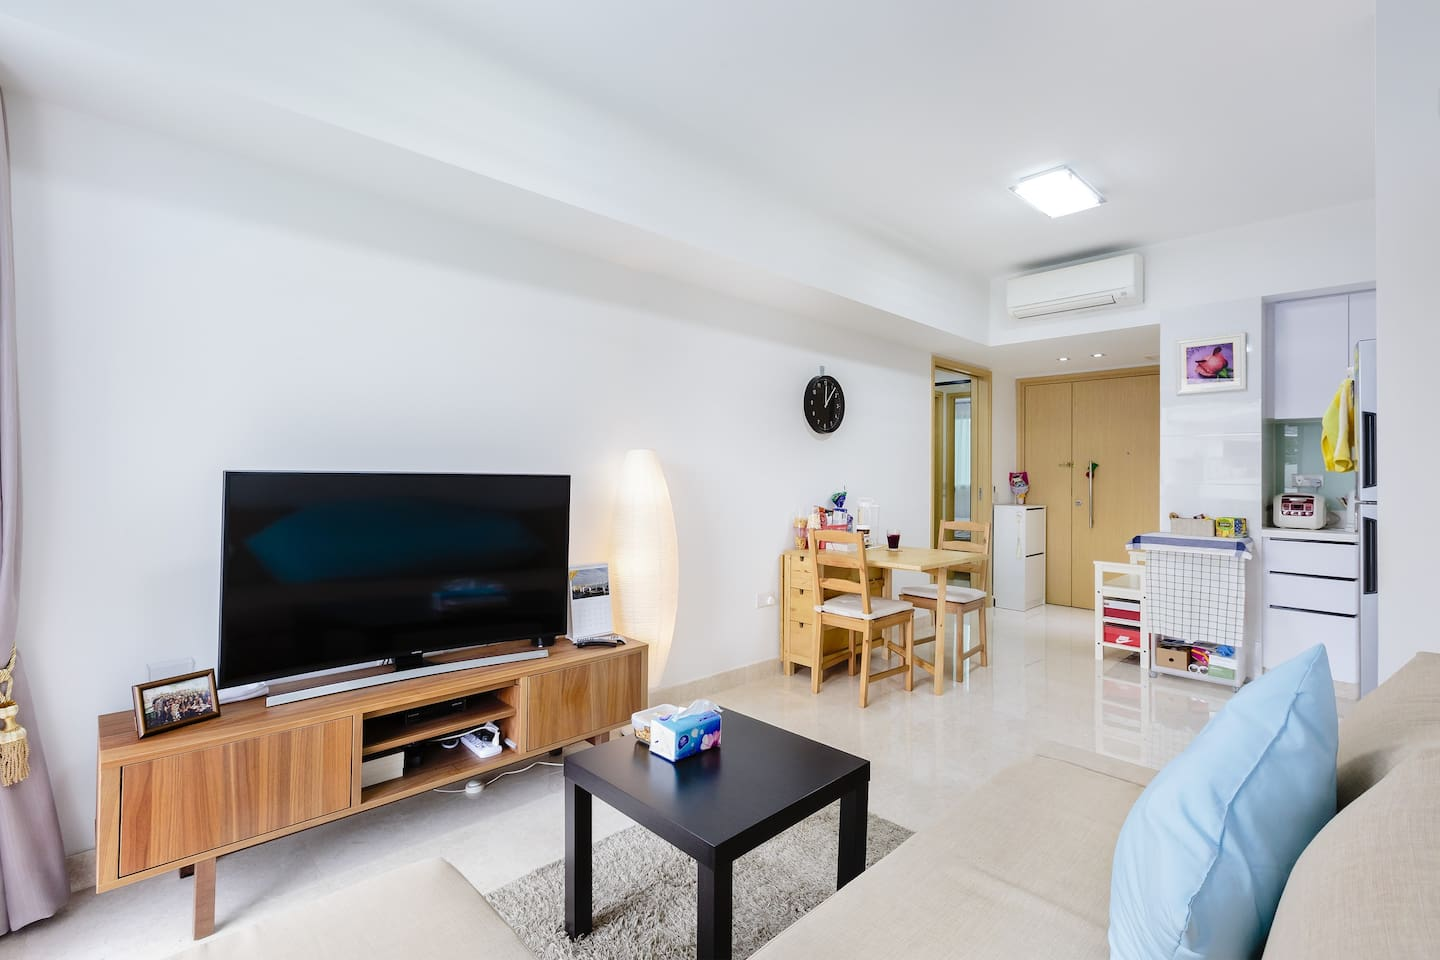 Shared space - living room with TV